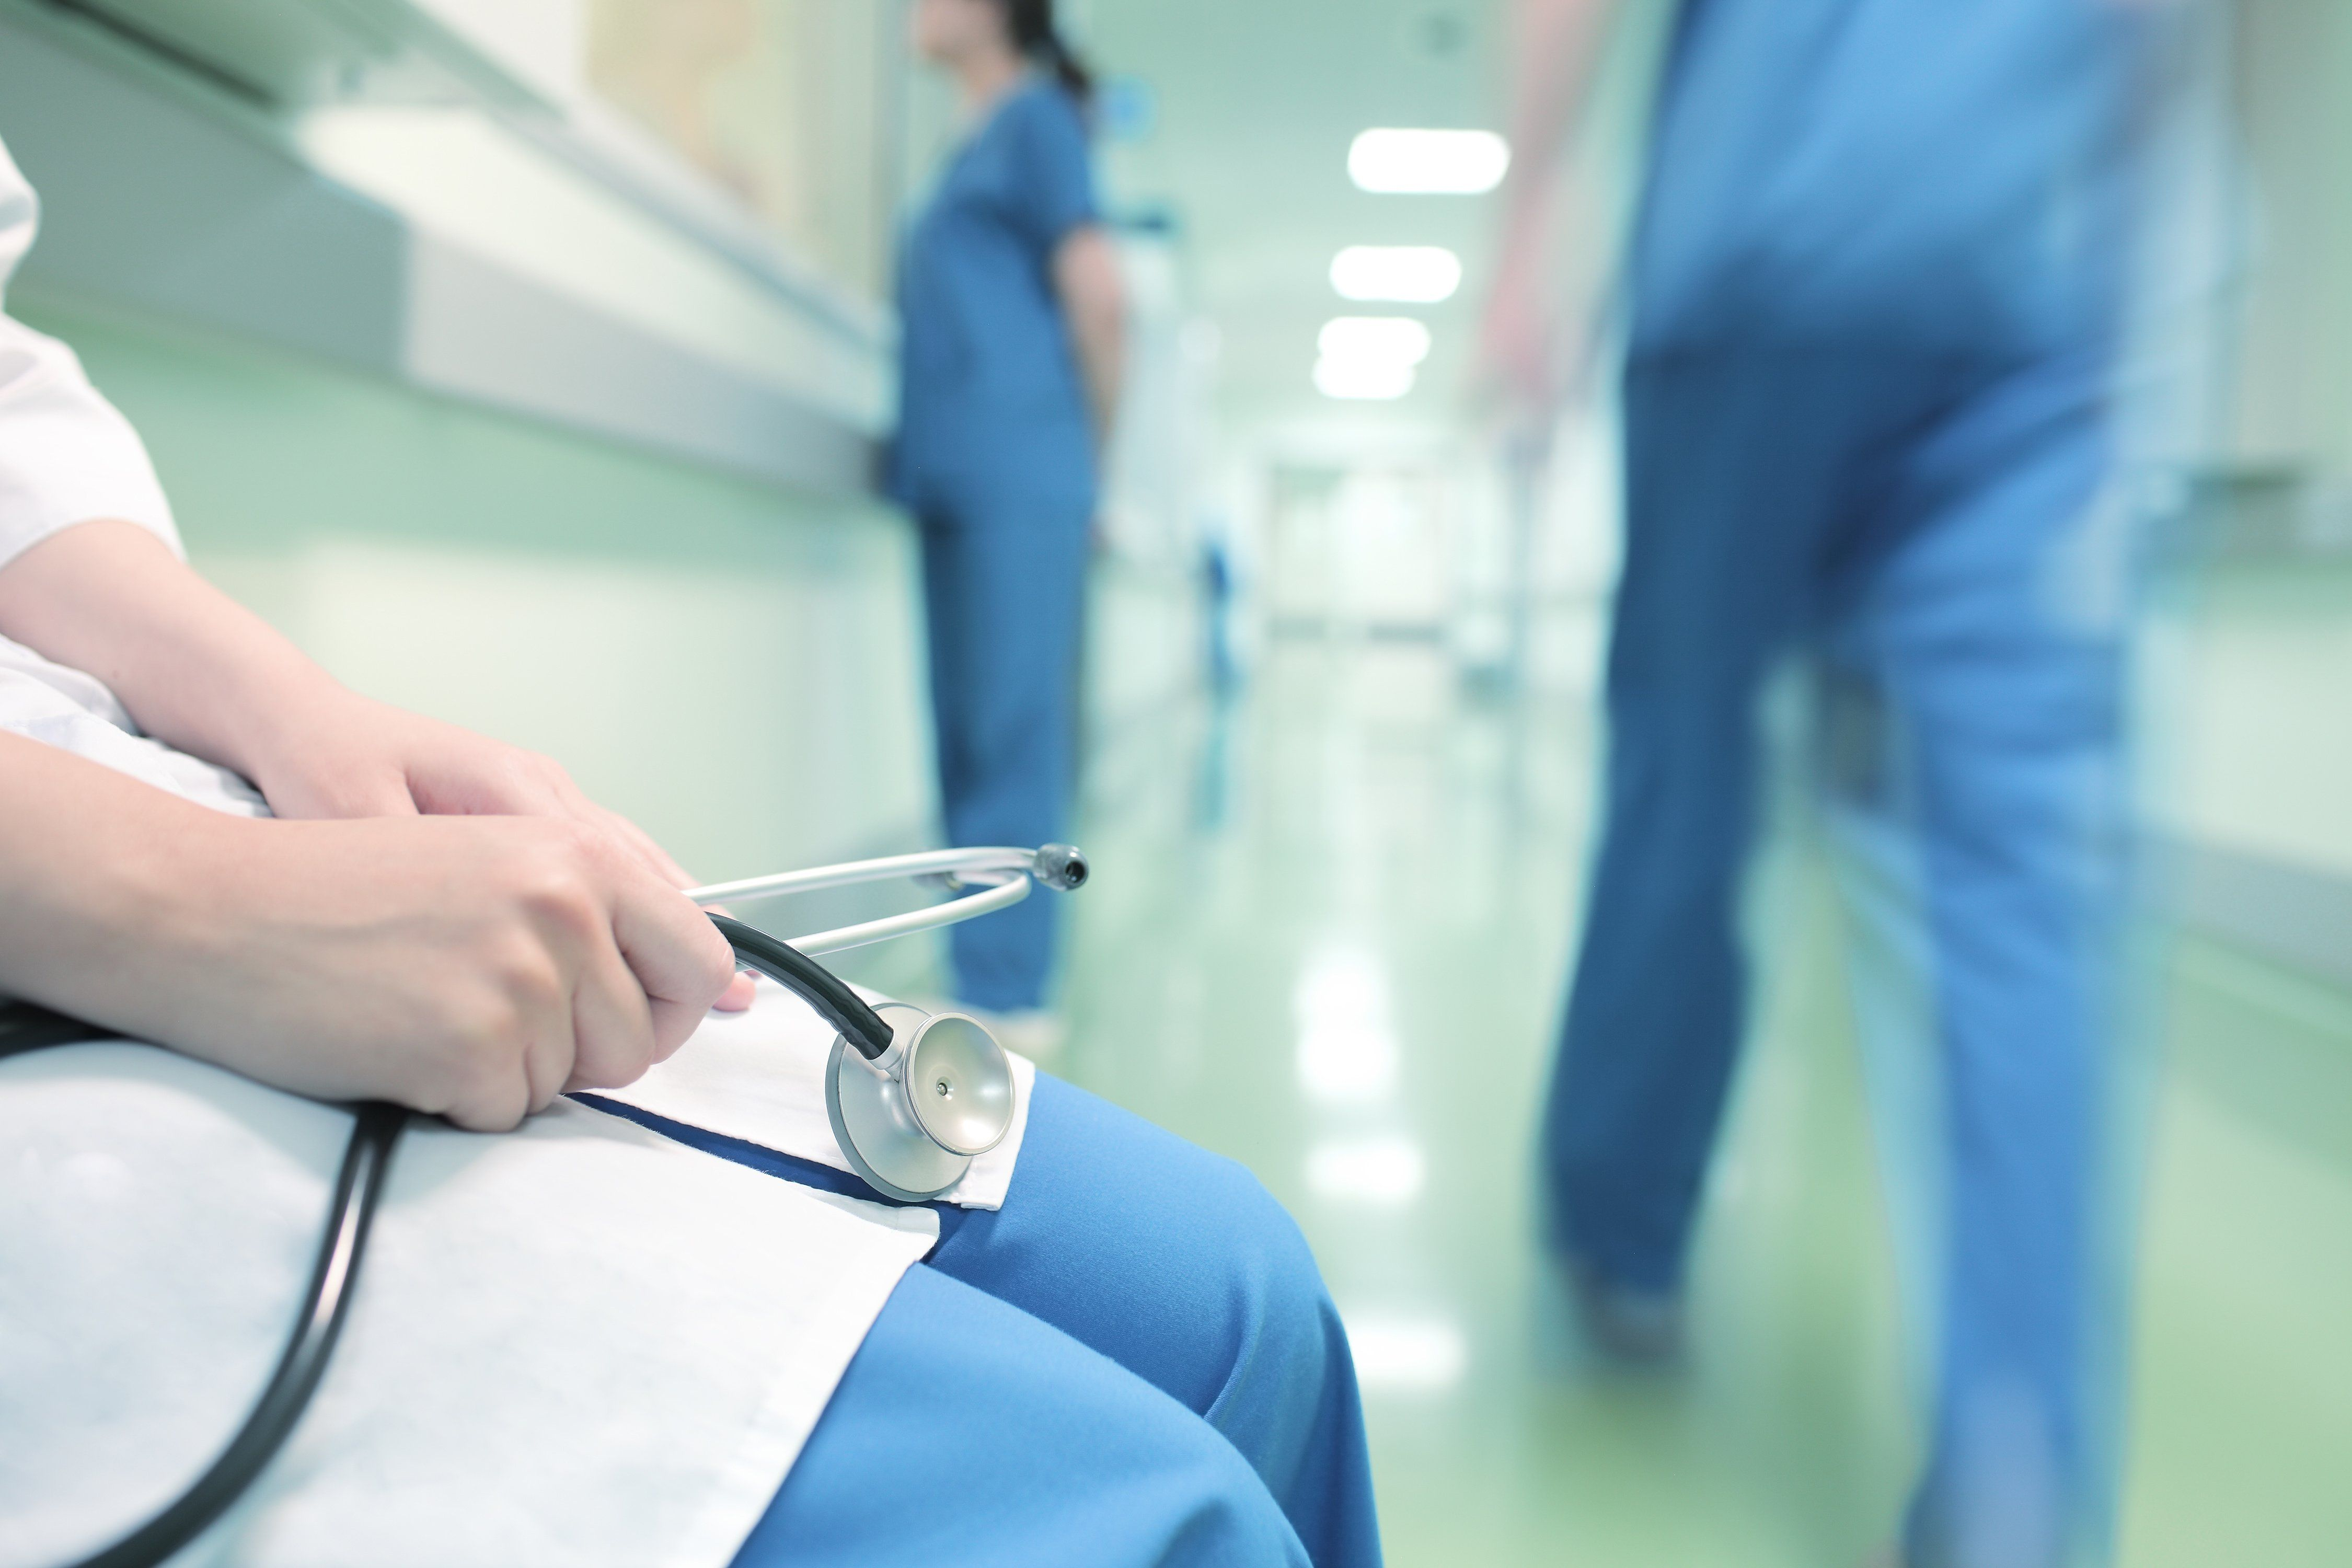 What's the cause of 50% of pediatric safety errors?